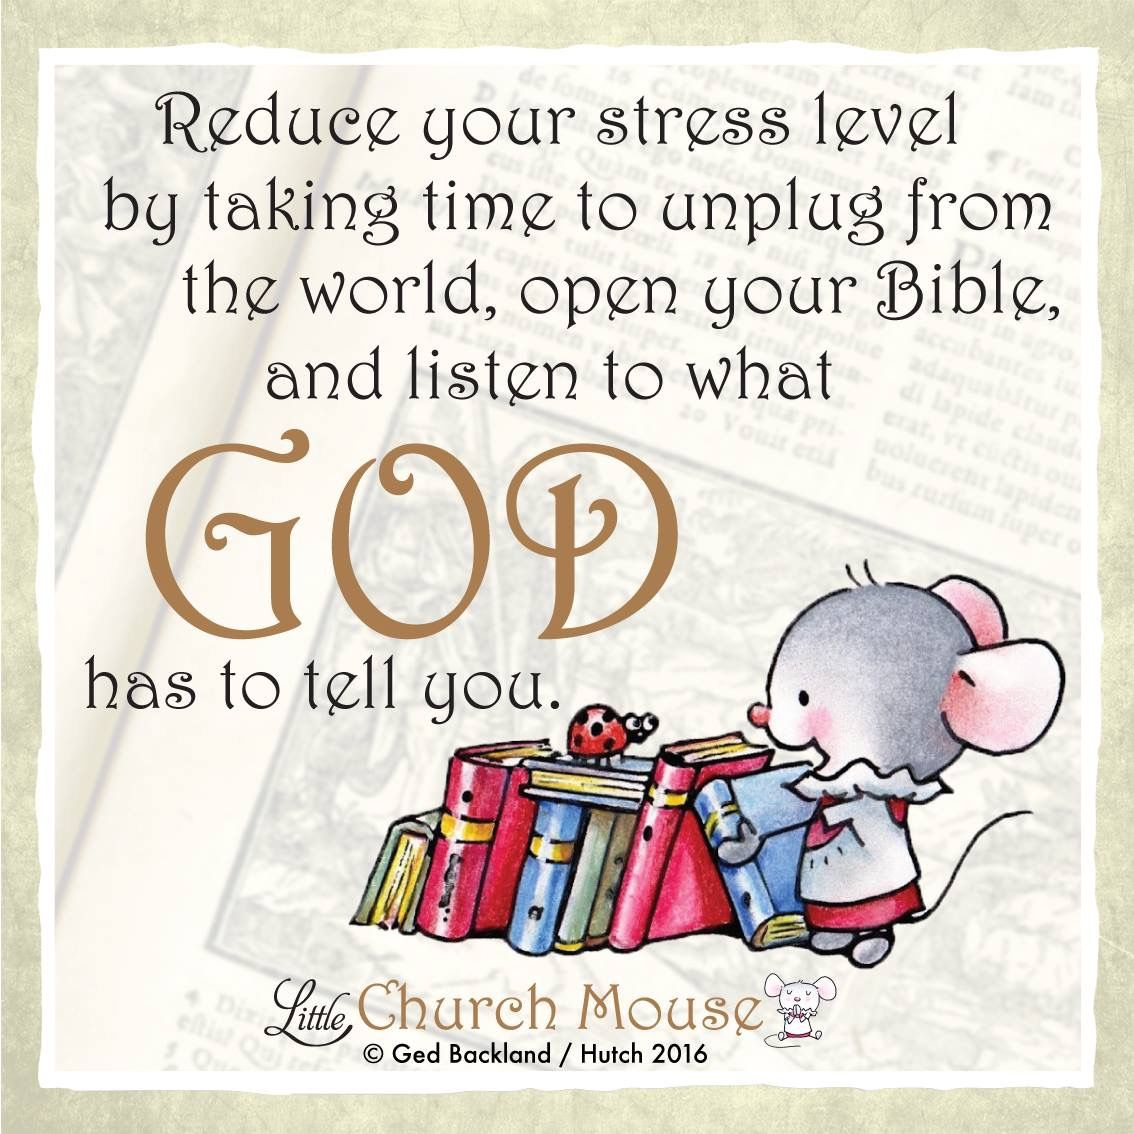 Daily Inspirational Thoughts Pinmaggy Manzullo On Little Church Mouse  Pinterest  Mice